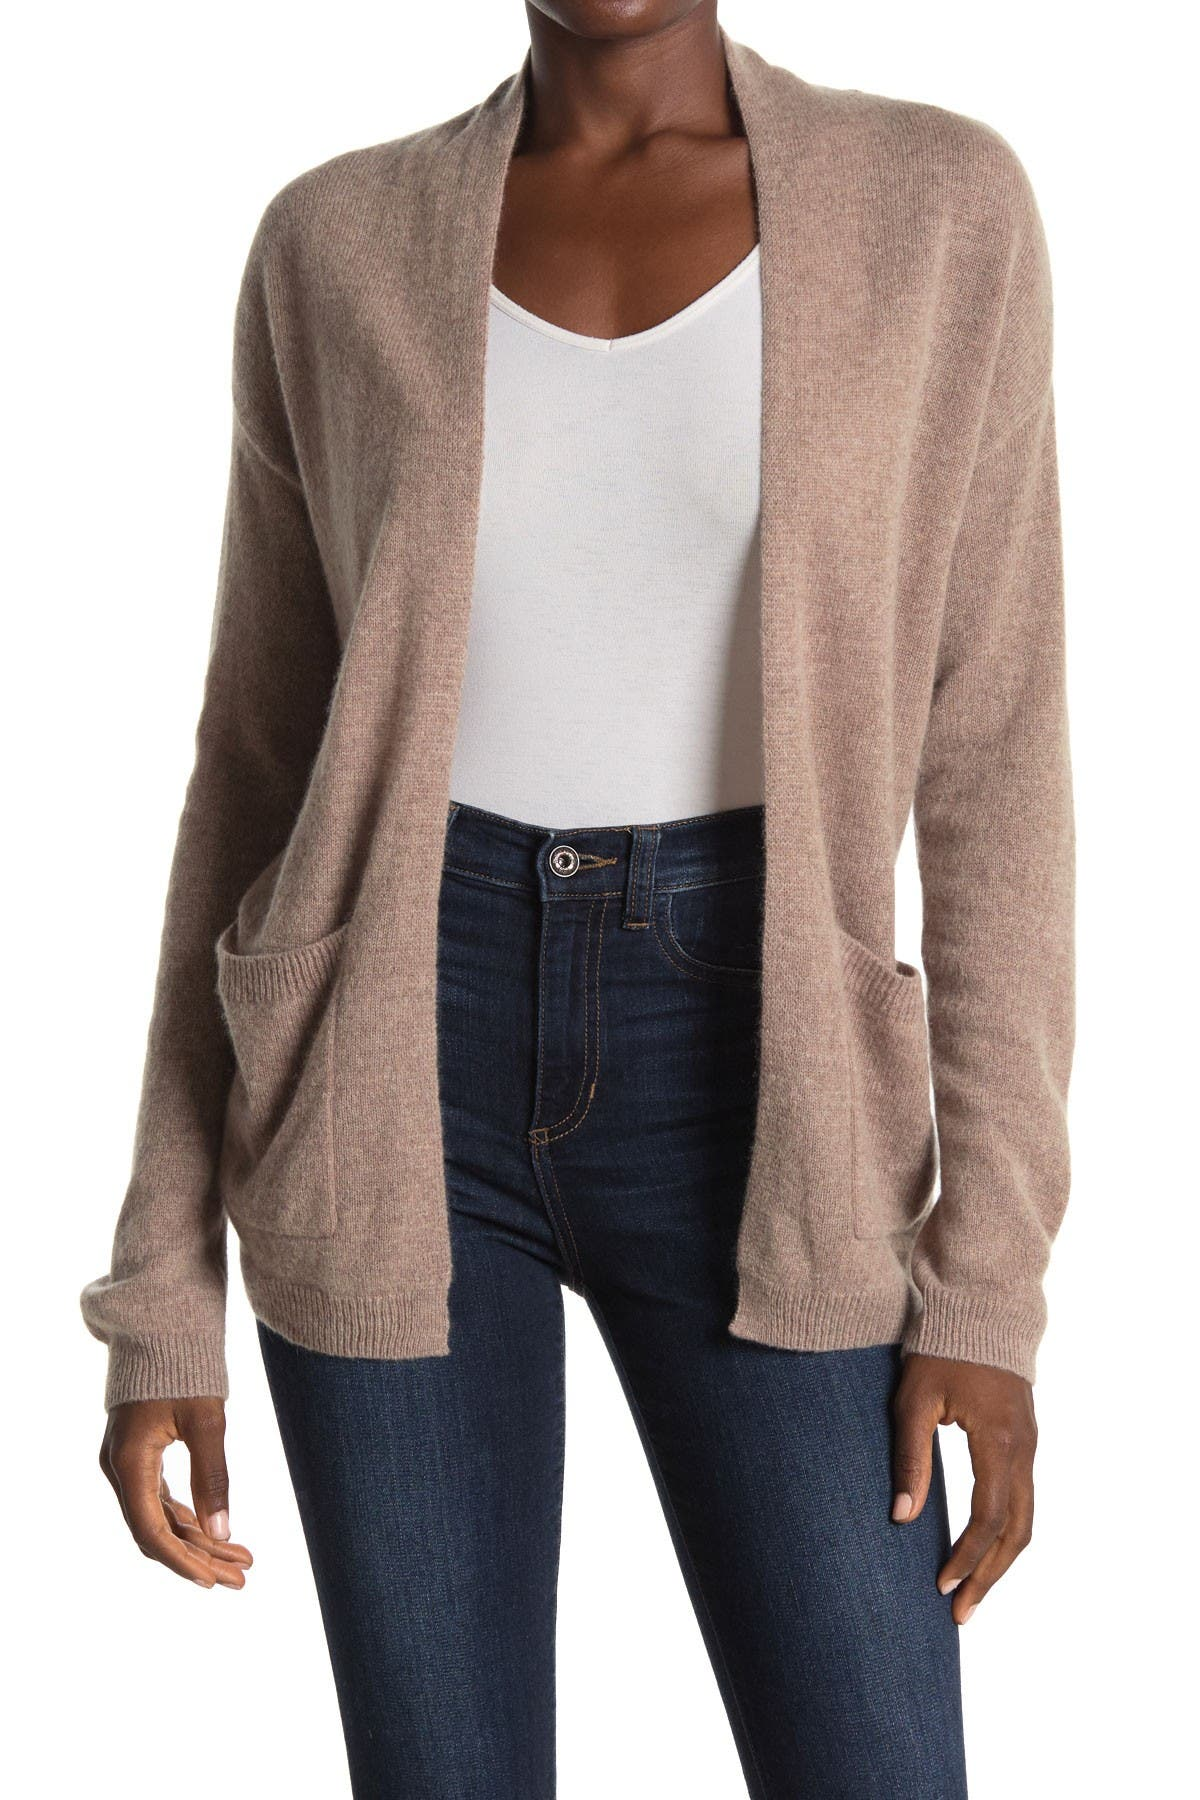 Image of 14th & Union Cashmere Cardigan